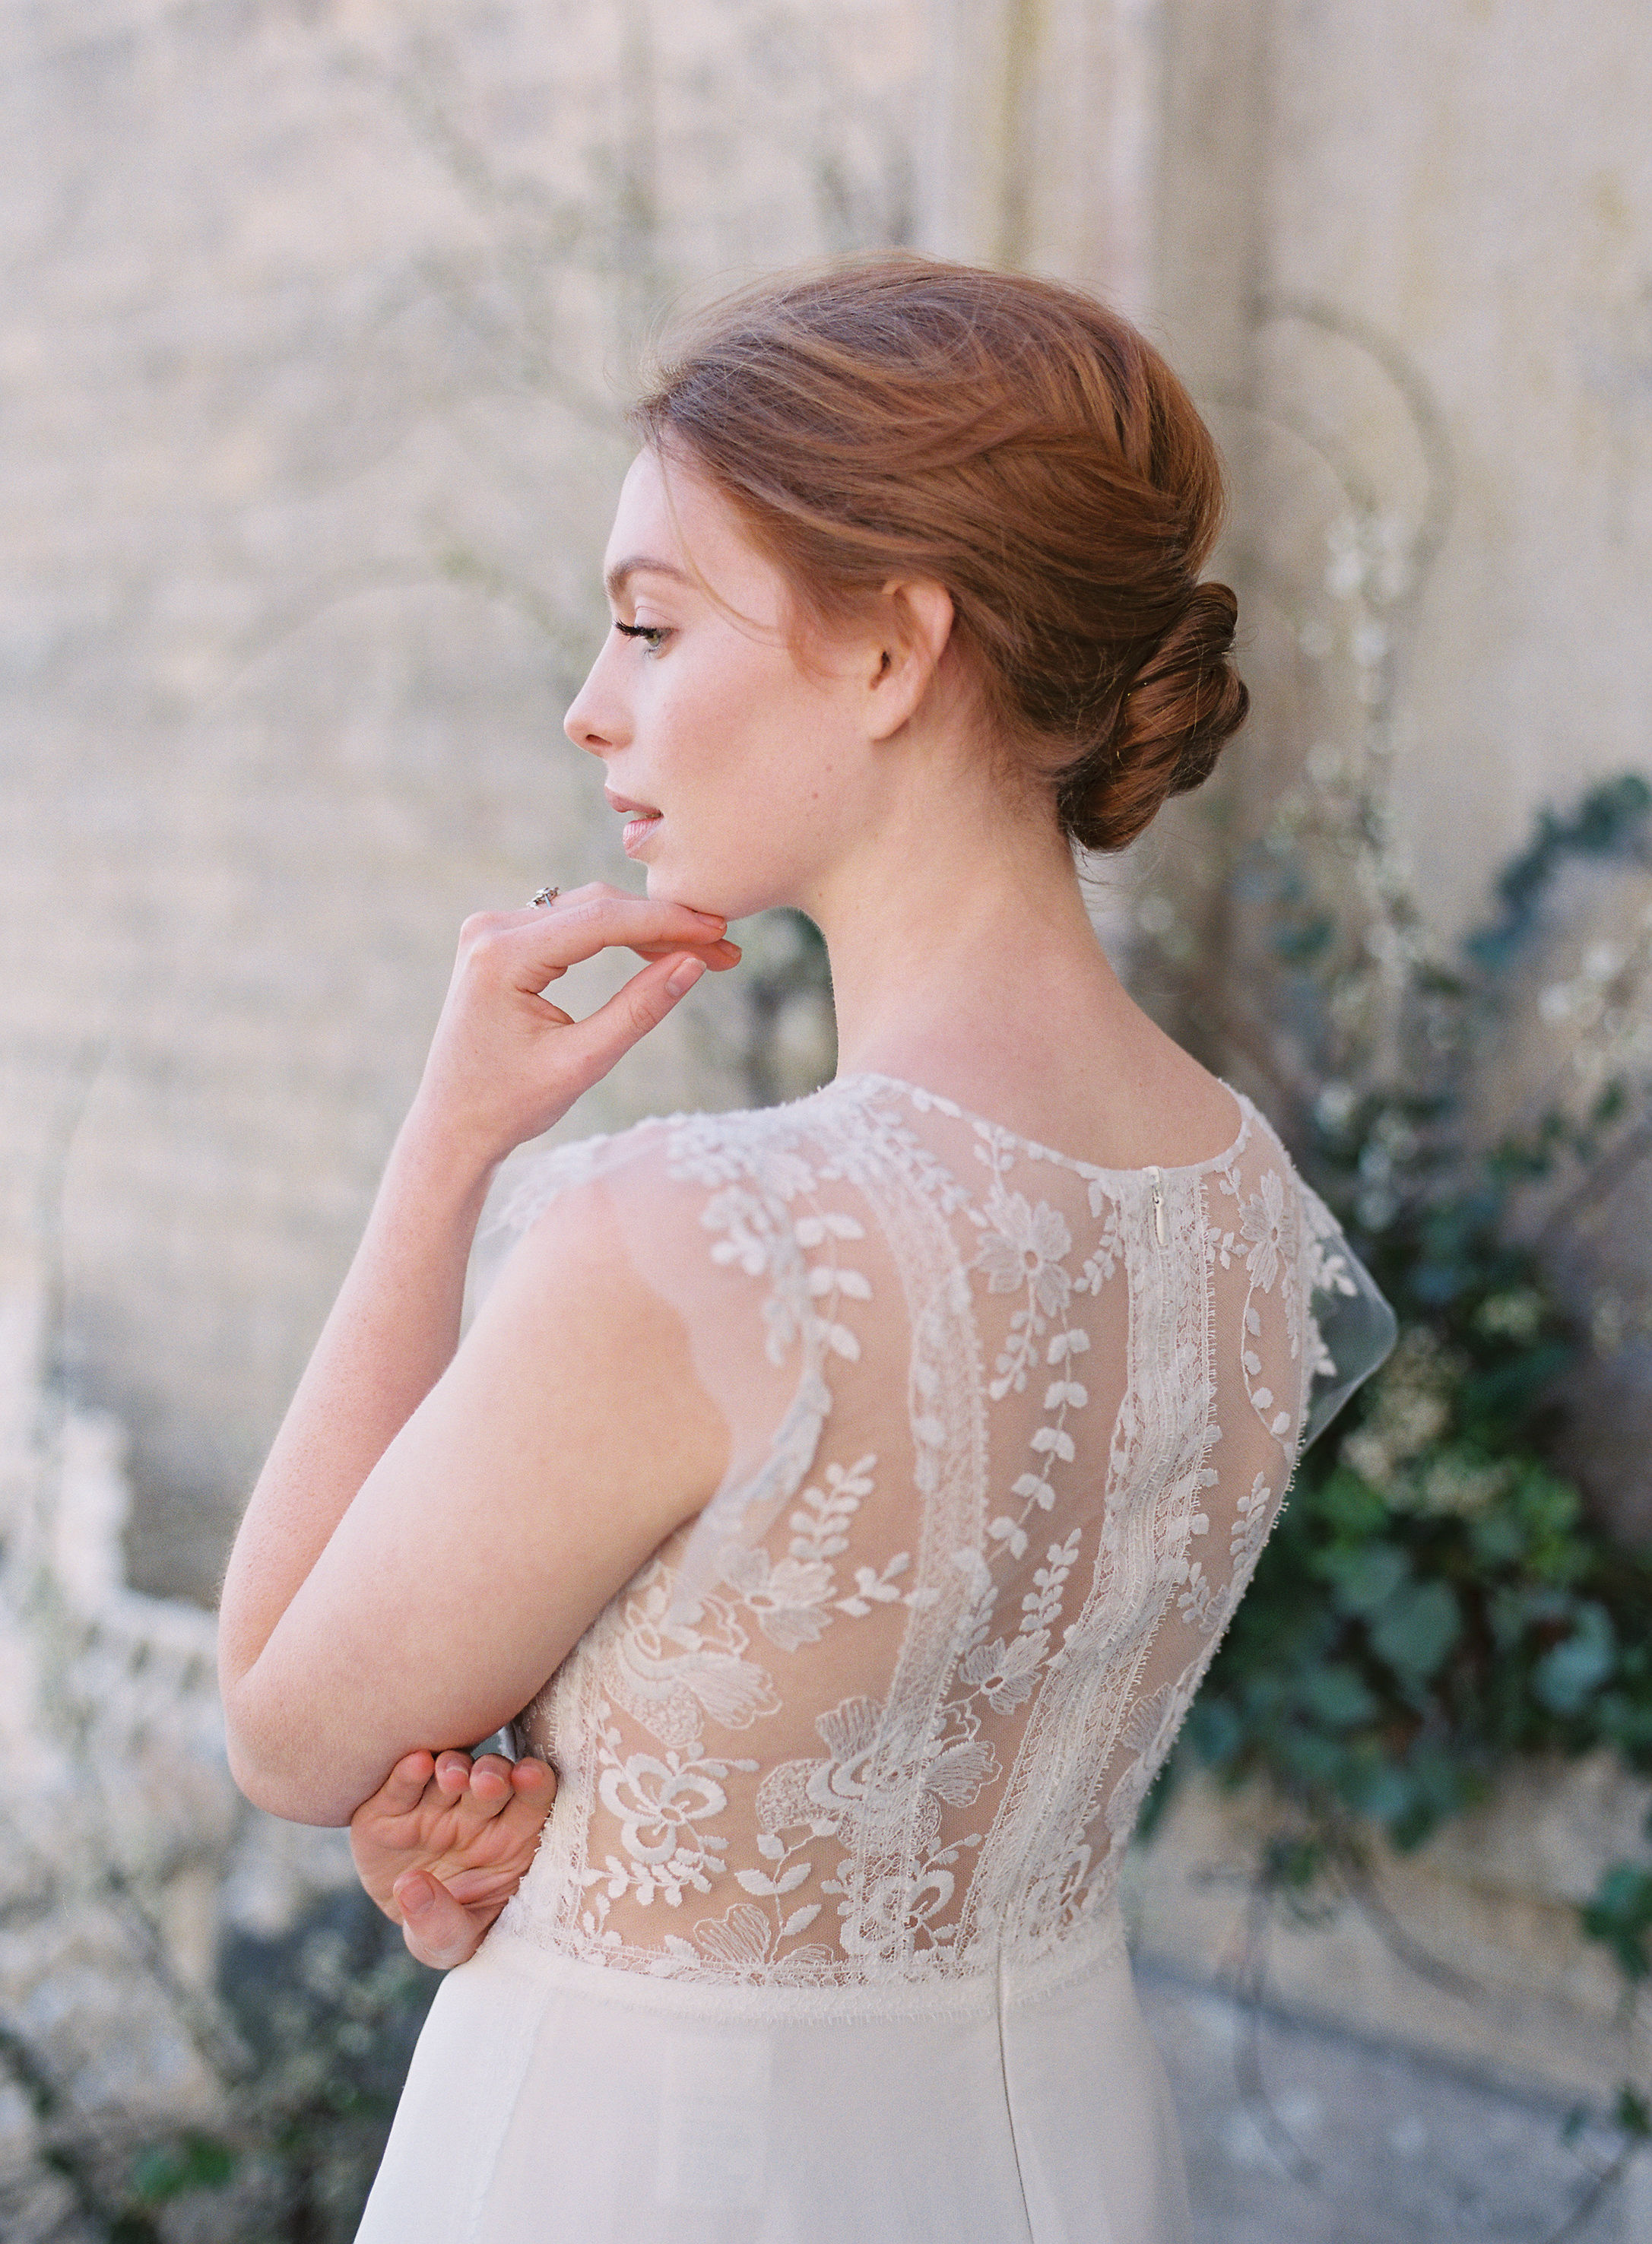 Anna Kara bridal gown for a Spring inspired wedding shoot at heritage venue Somerley House. Photo by Camilla Arnhold